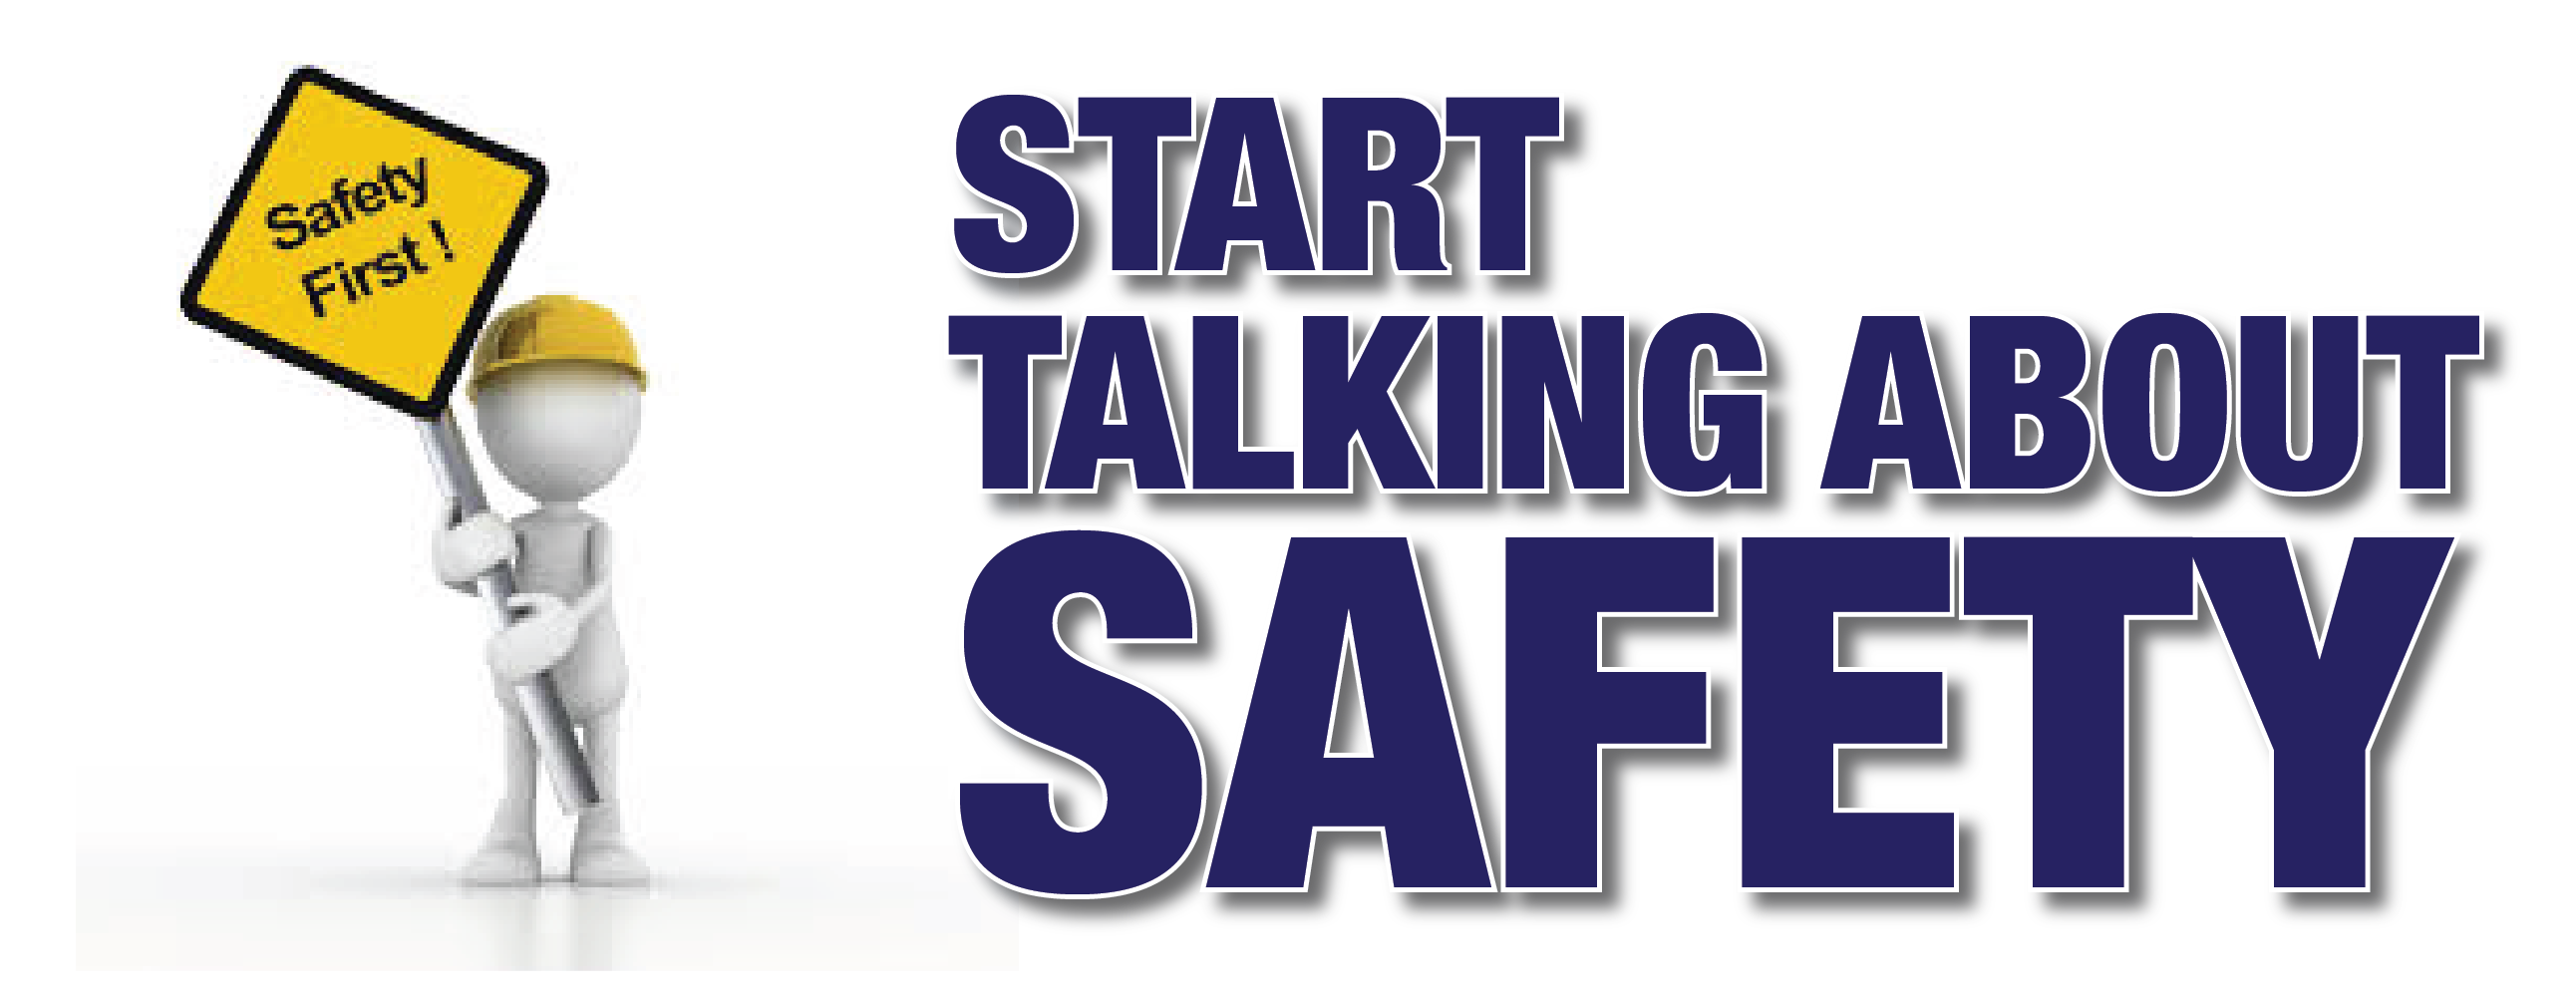 10 Tips To Help Prevent Safety Accidents